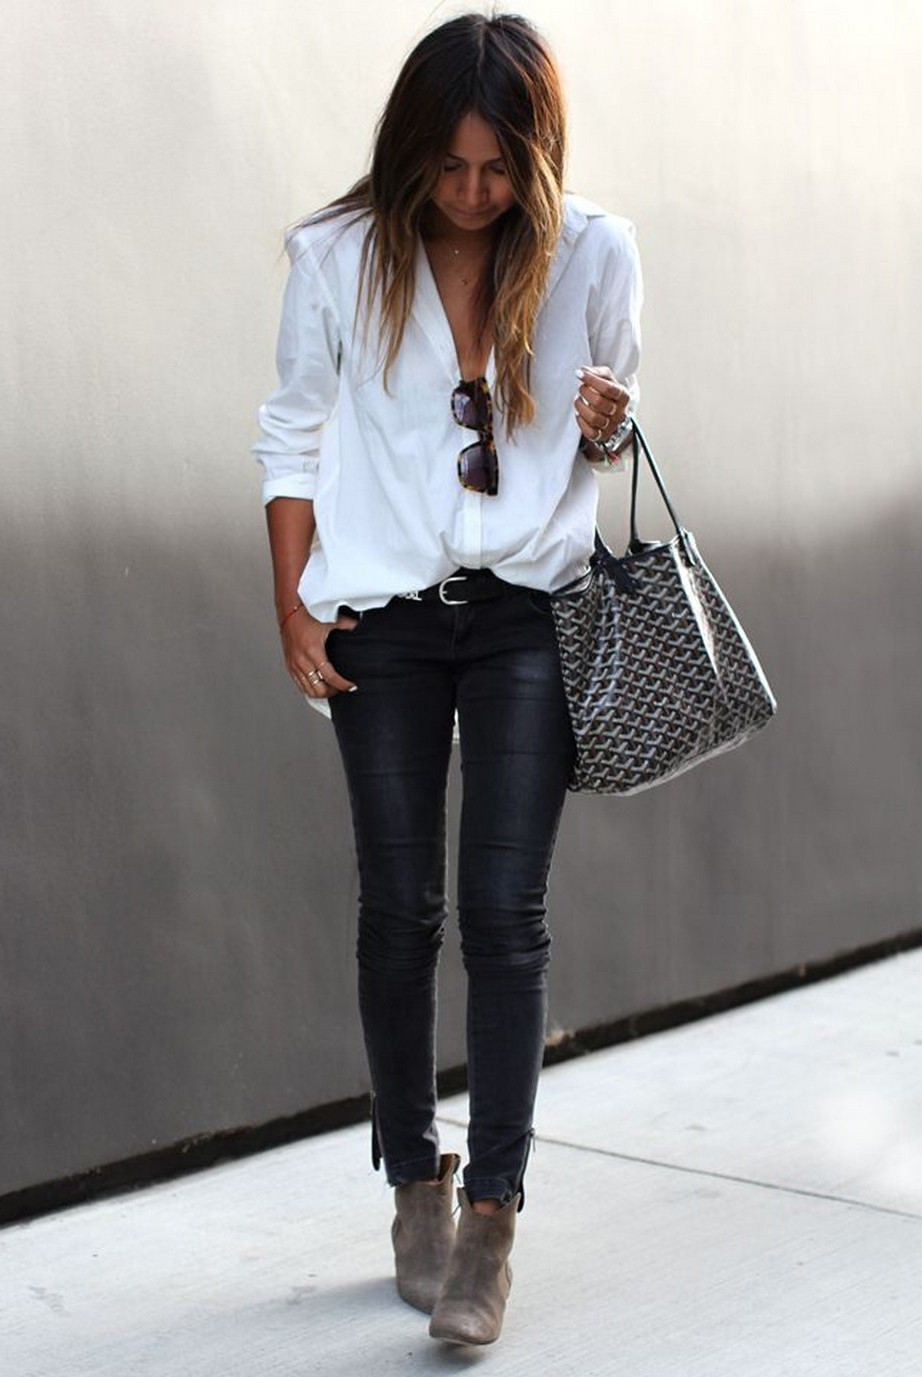 Classic black and white will never goes out of style